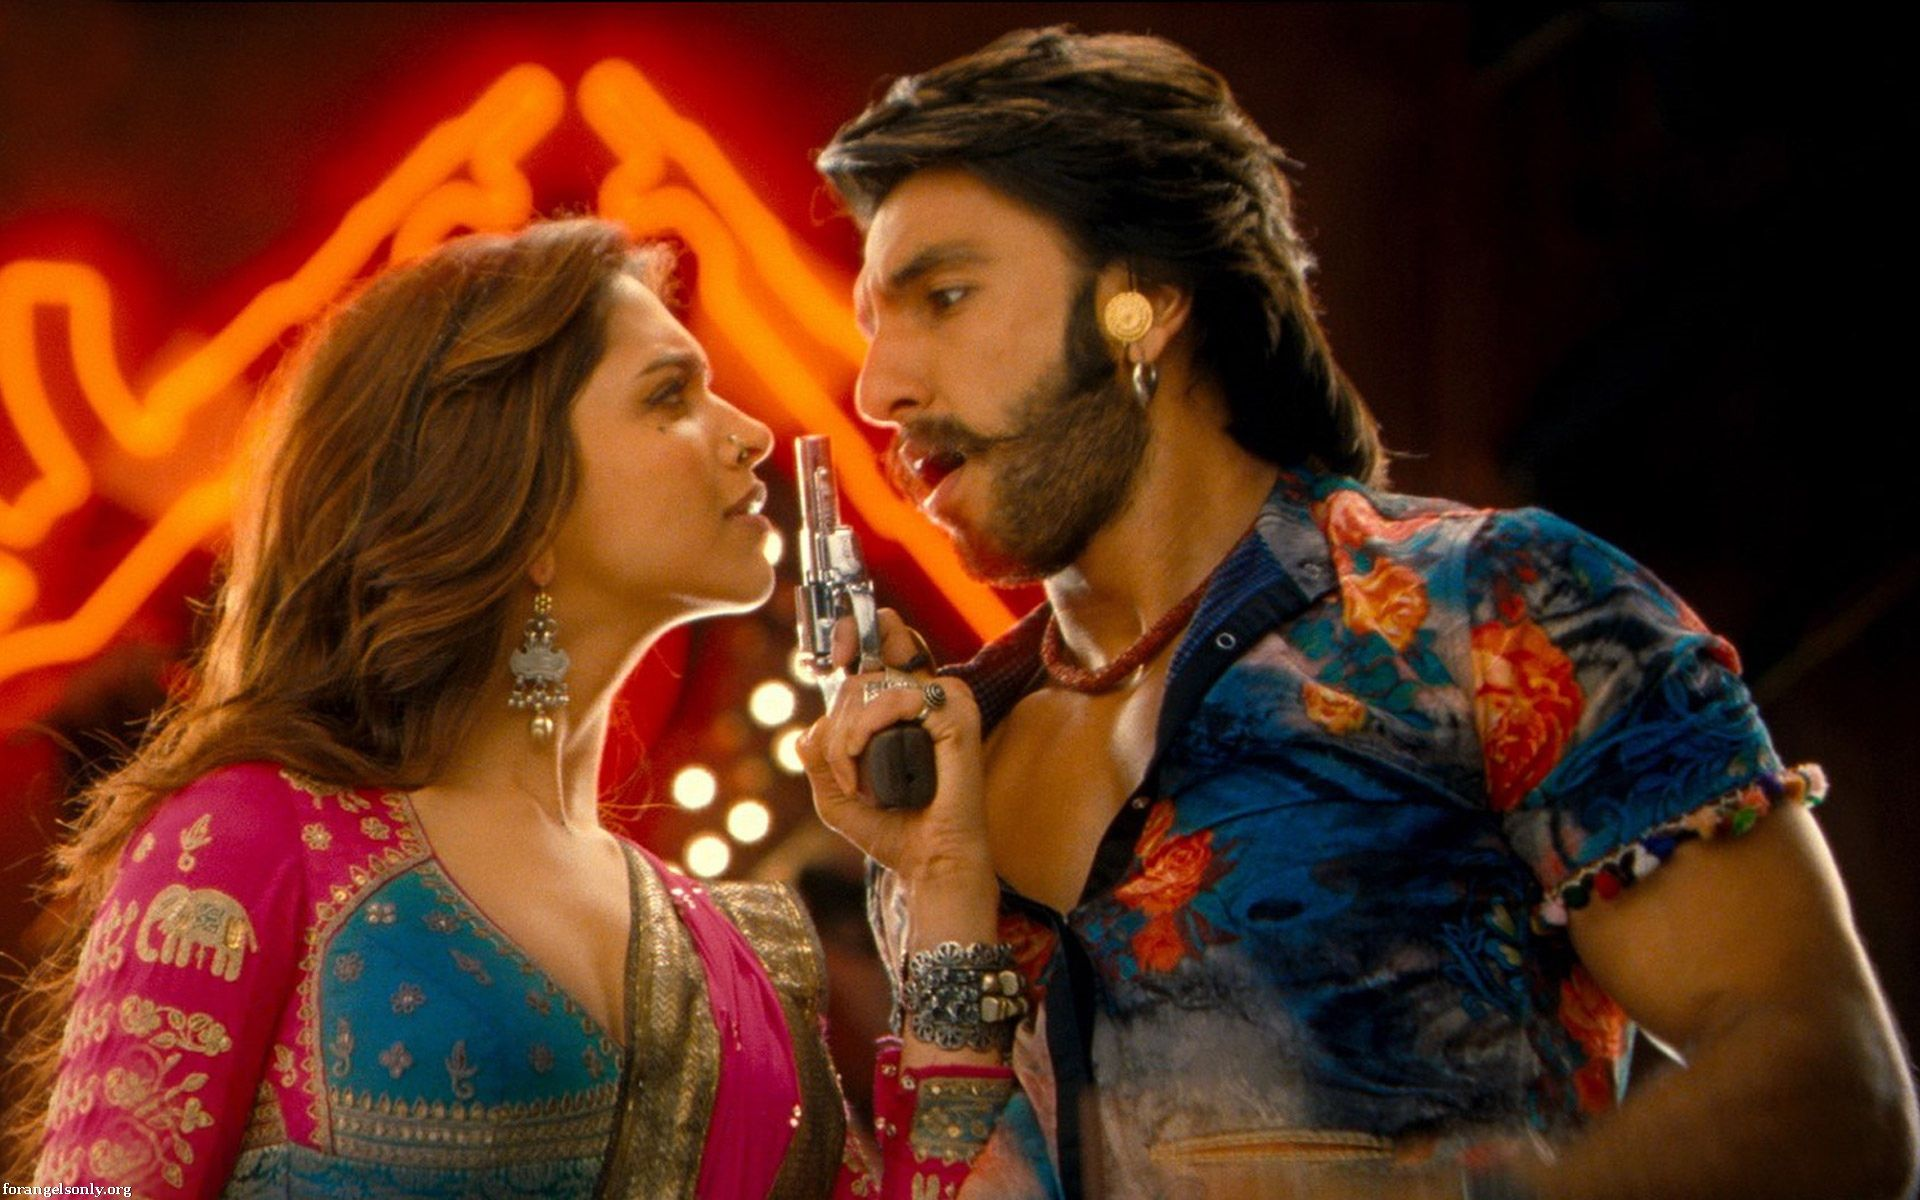 Ram-leela mp3 songs download, www. Songaction. In, mp3 download.